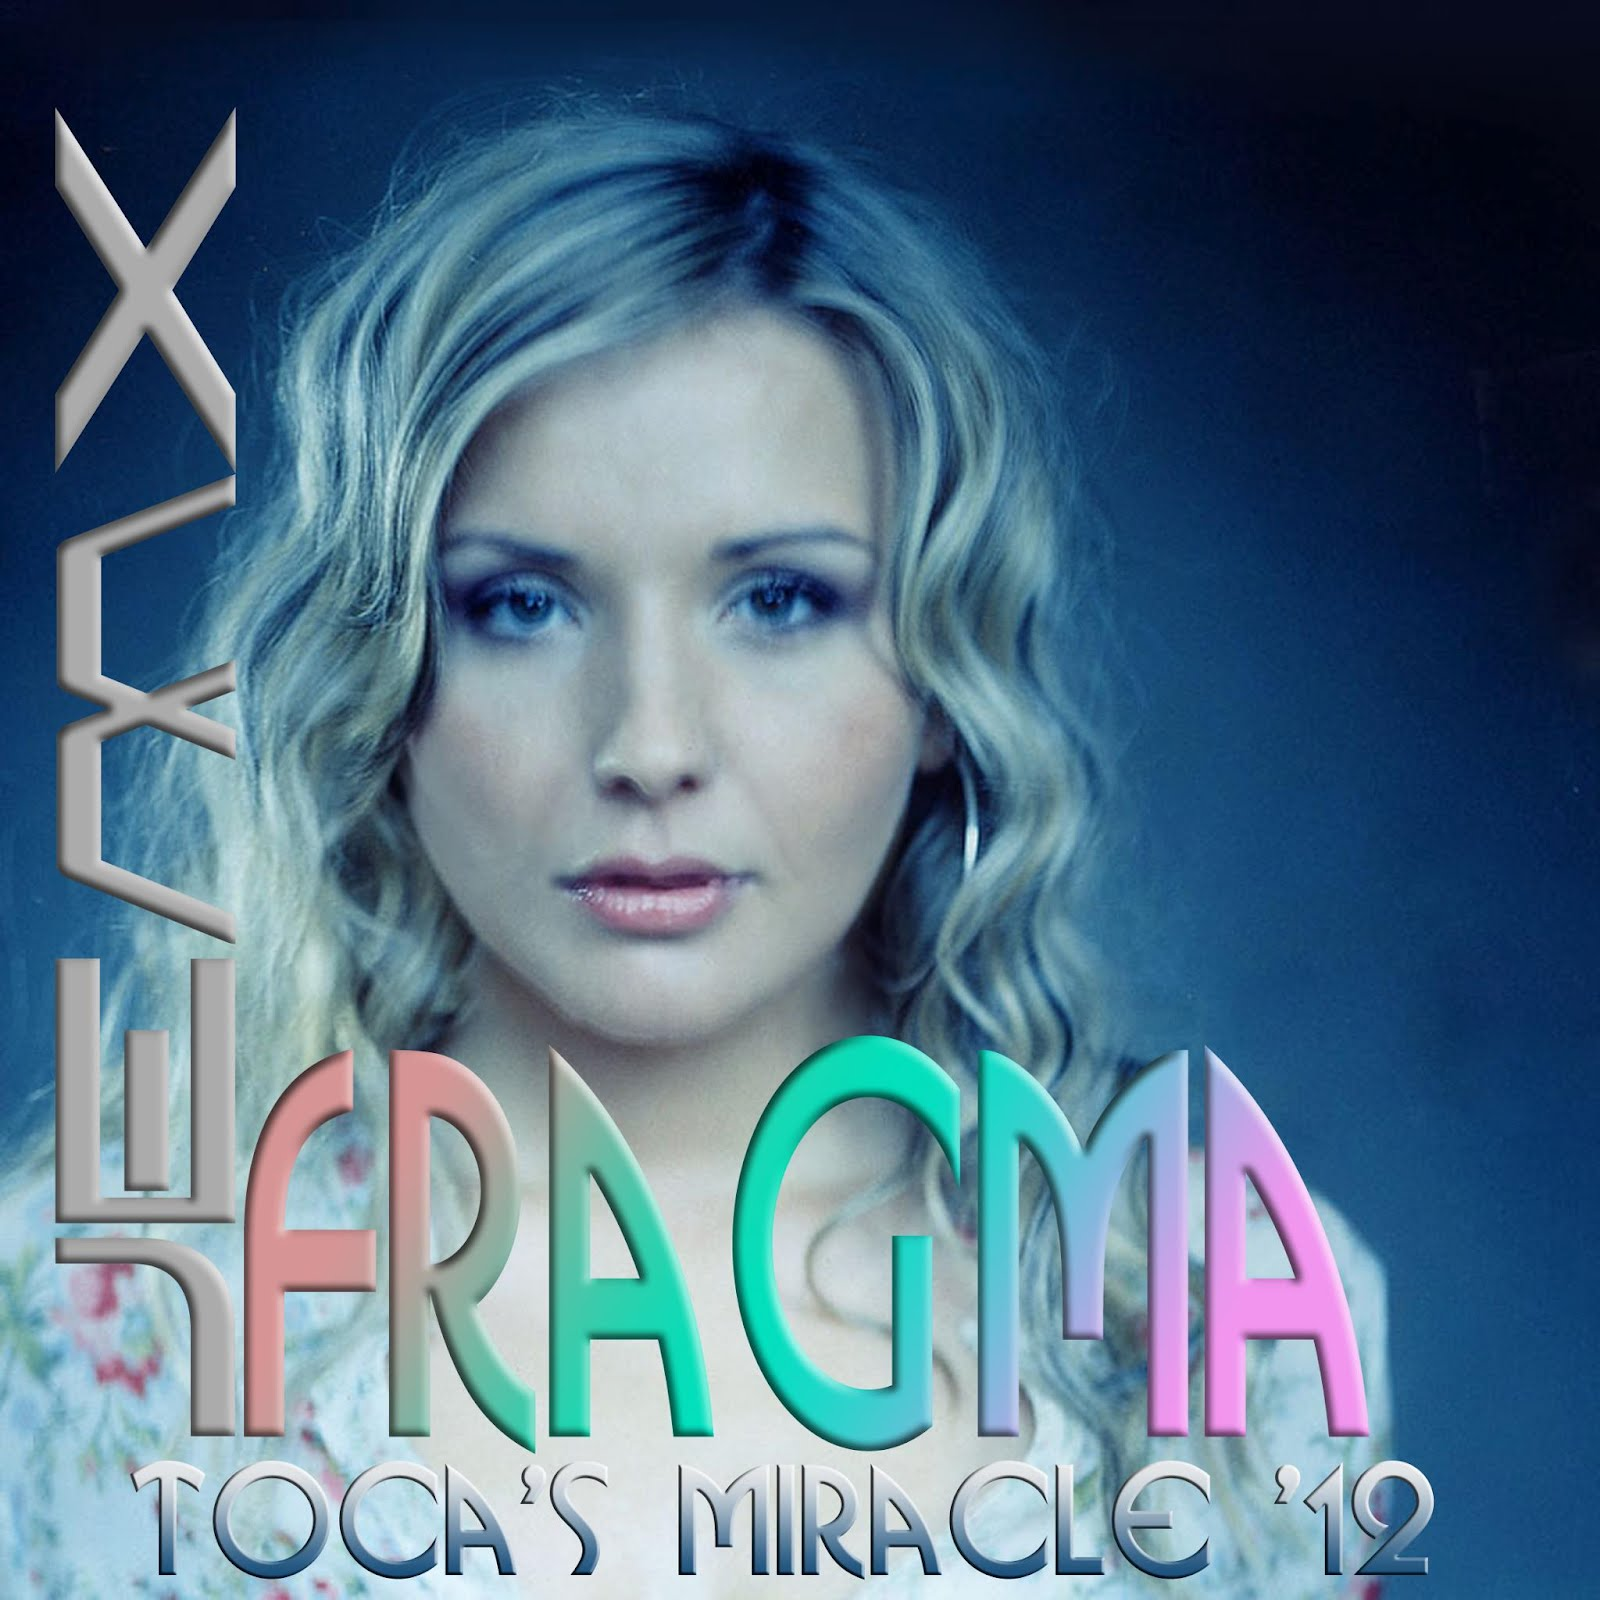 fragma tocas miracle inpetto edit by godman7 hulkshare